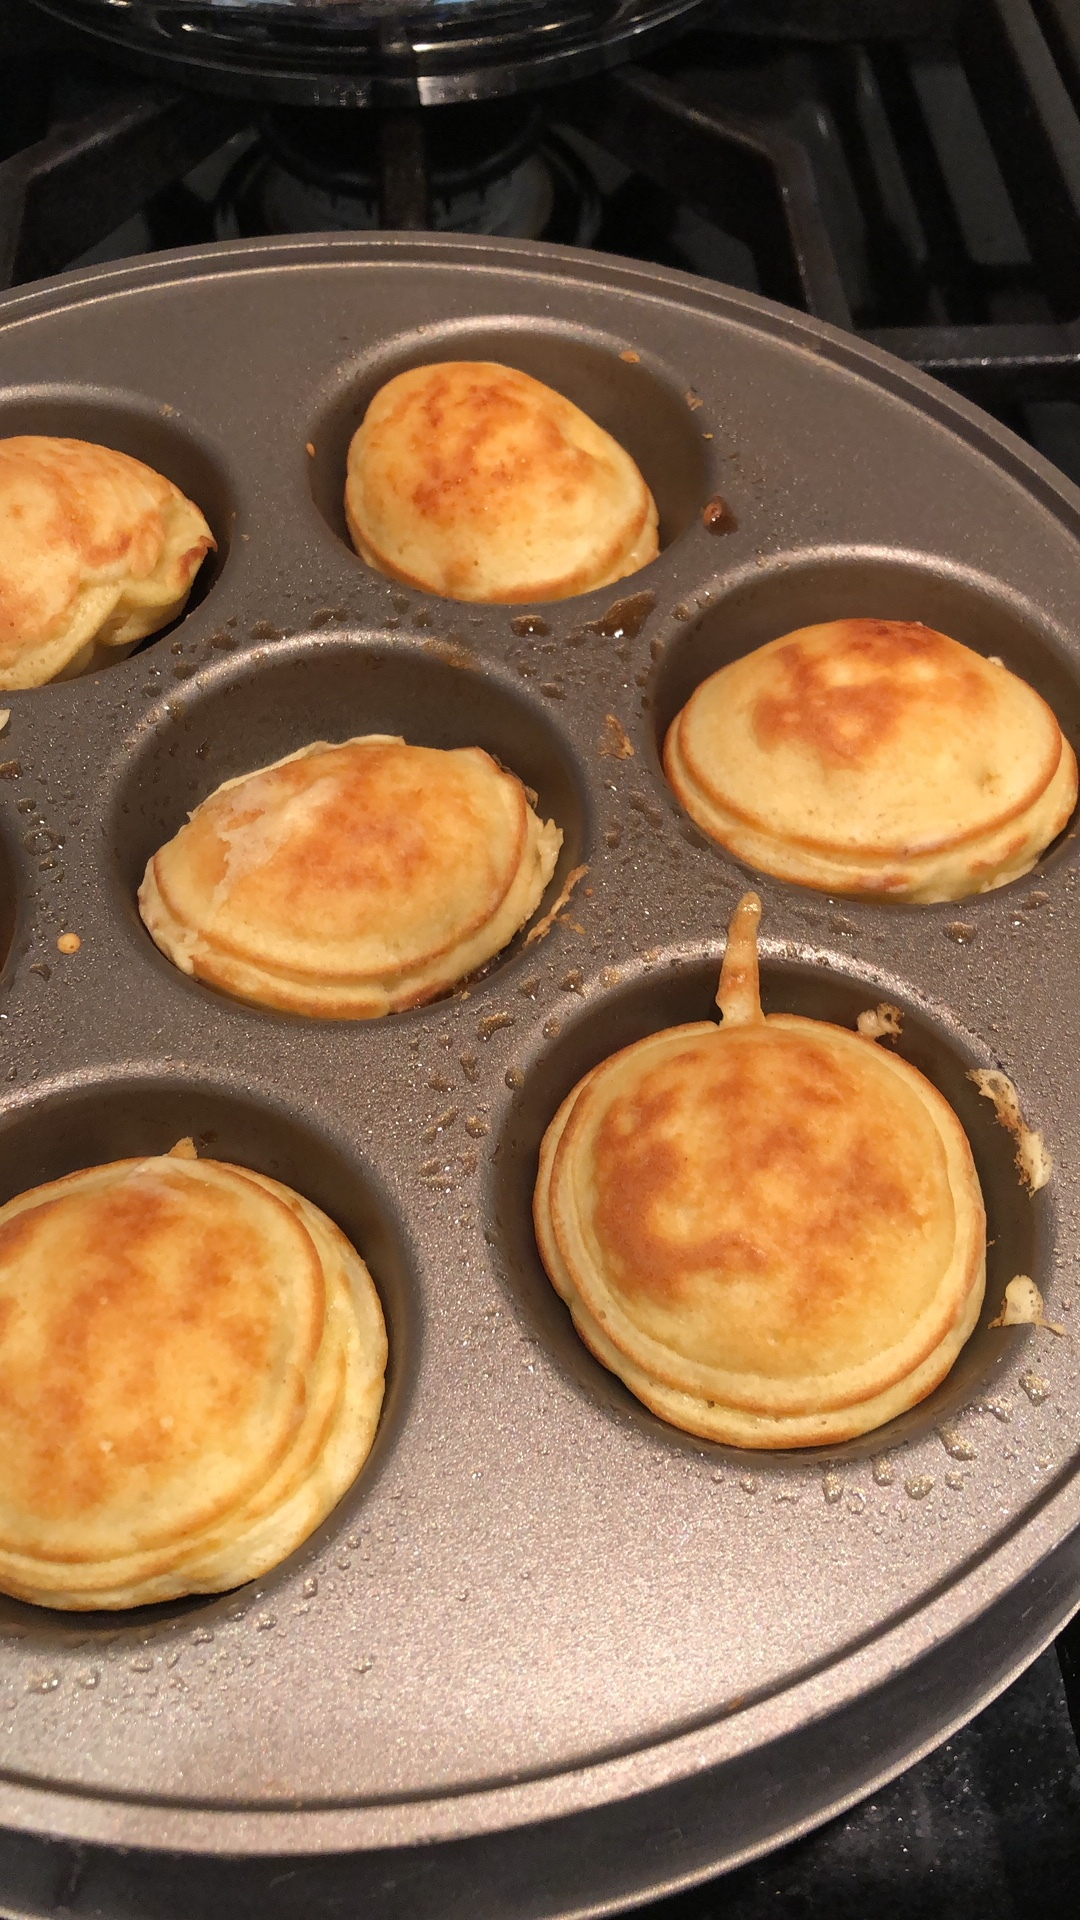 Once browned slightly, quickly flip and let cook for another 2-3 minutes. Serve immediately, these taste best hot!